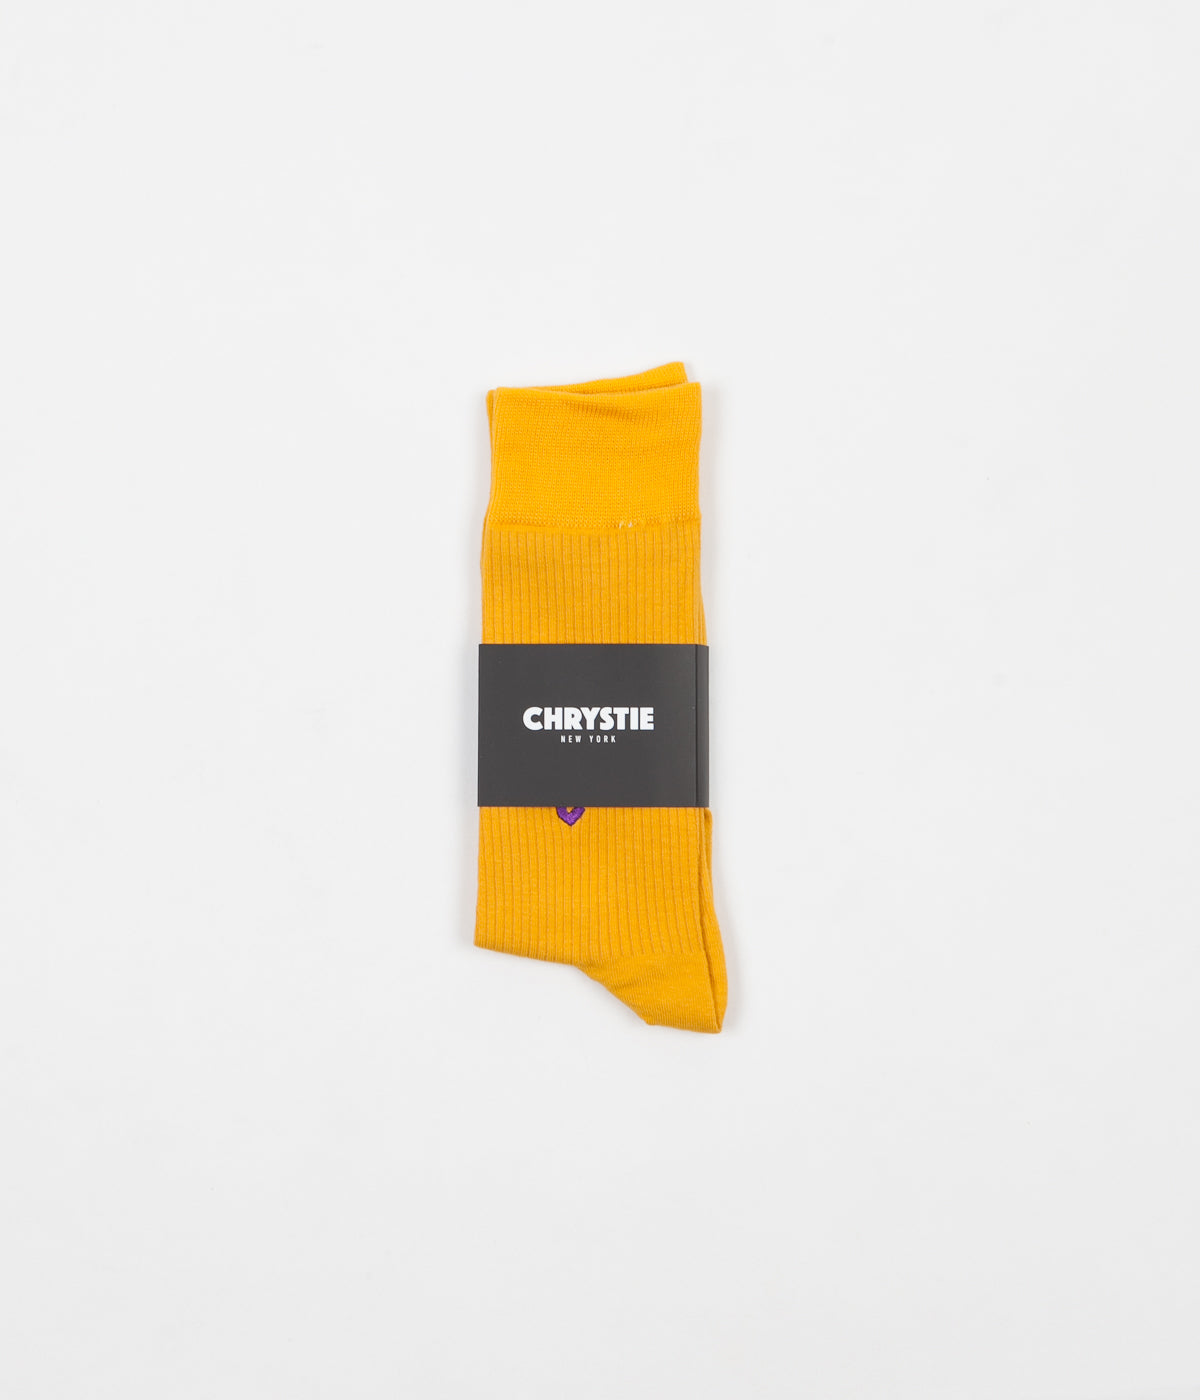 Chrystie NYC Casual Socks Vol. 2 - Yellow